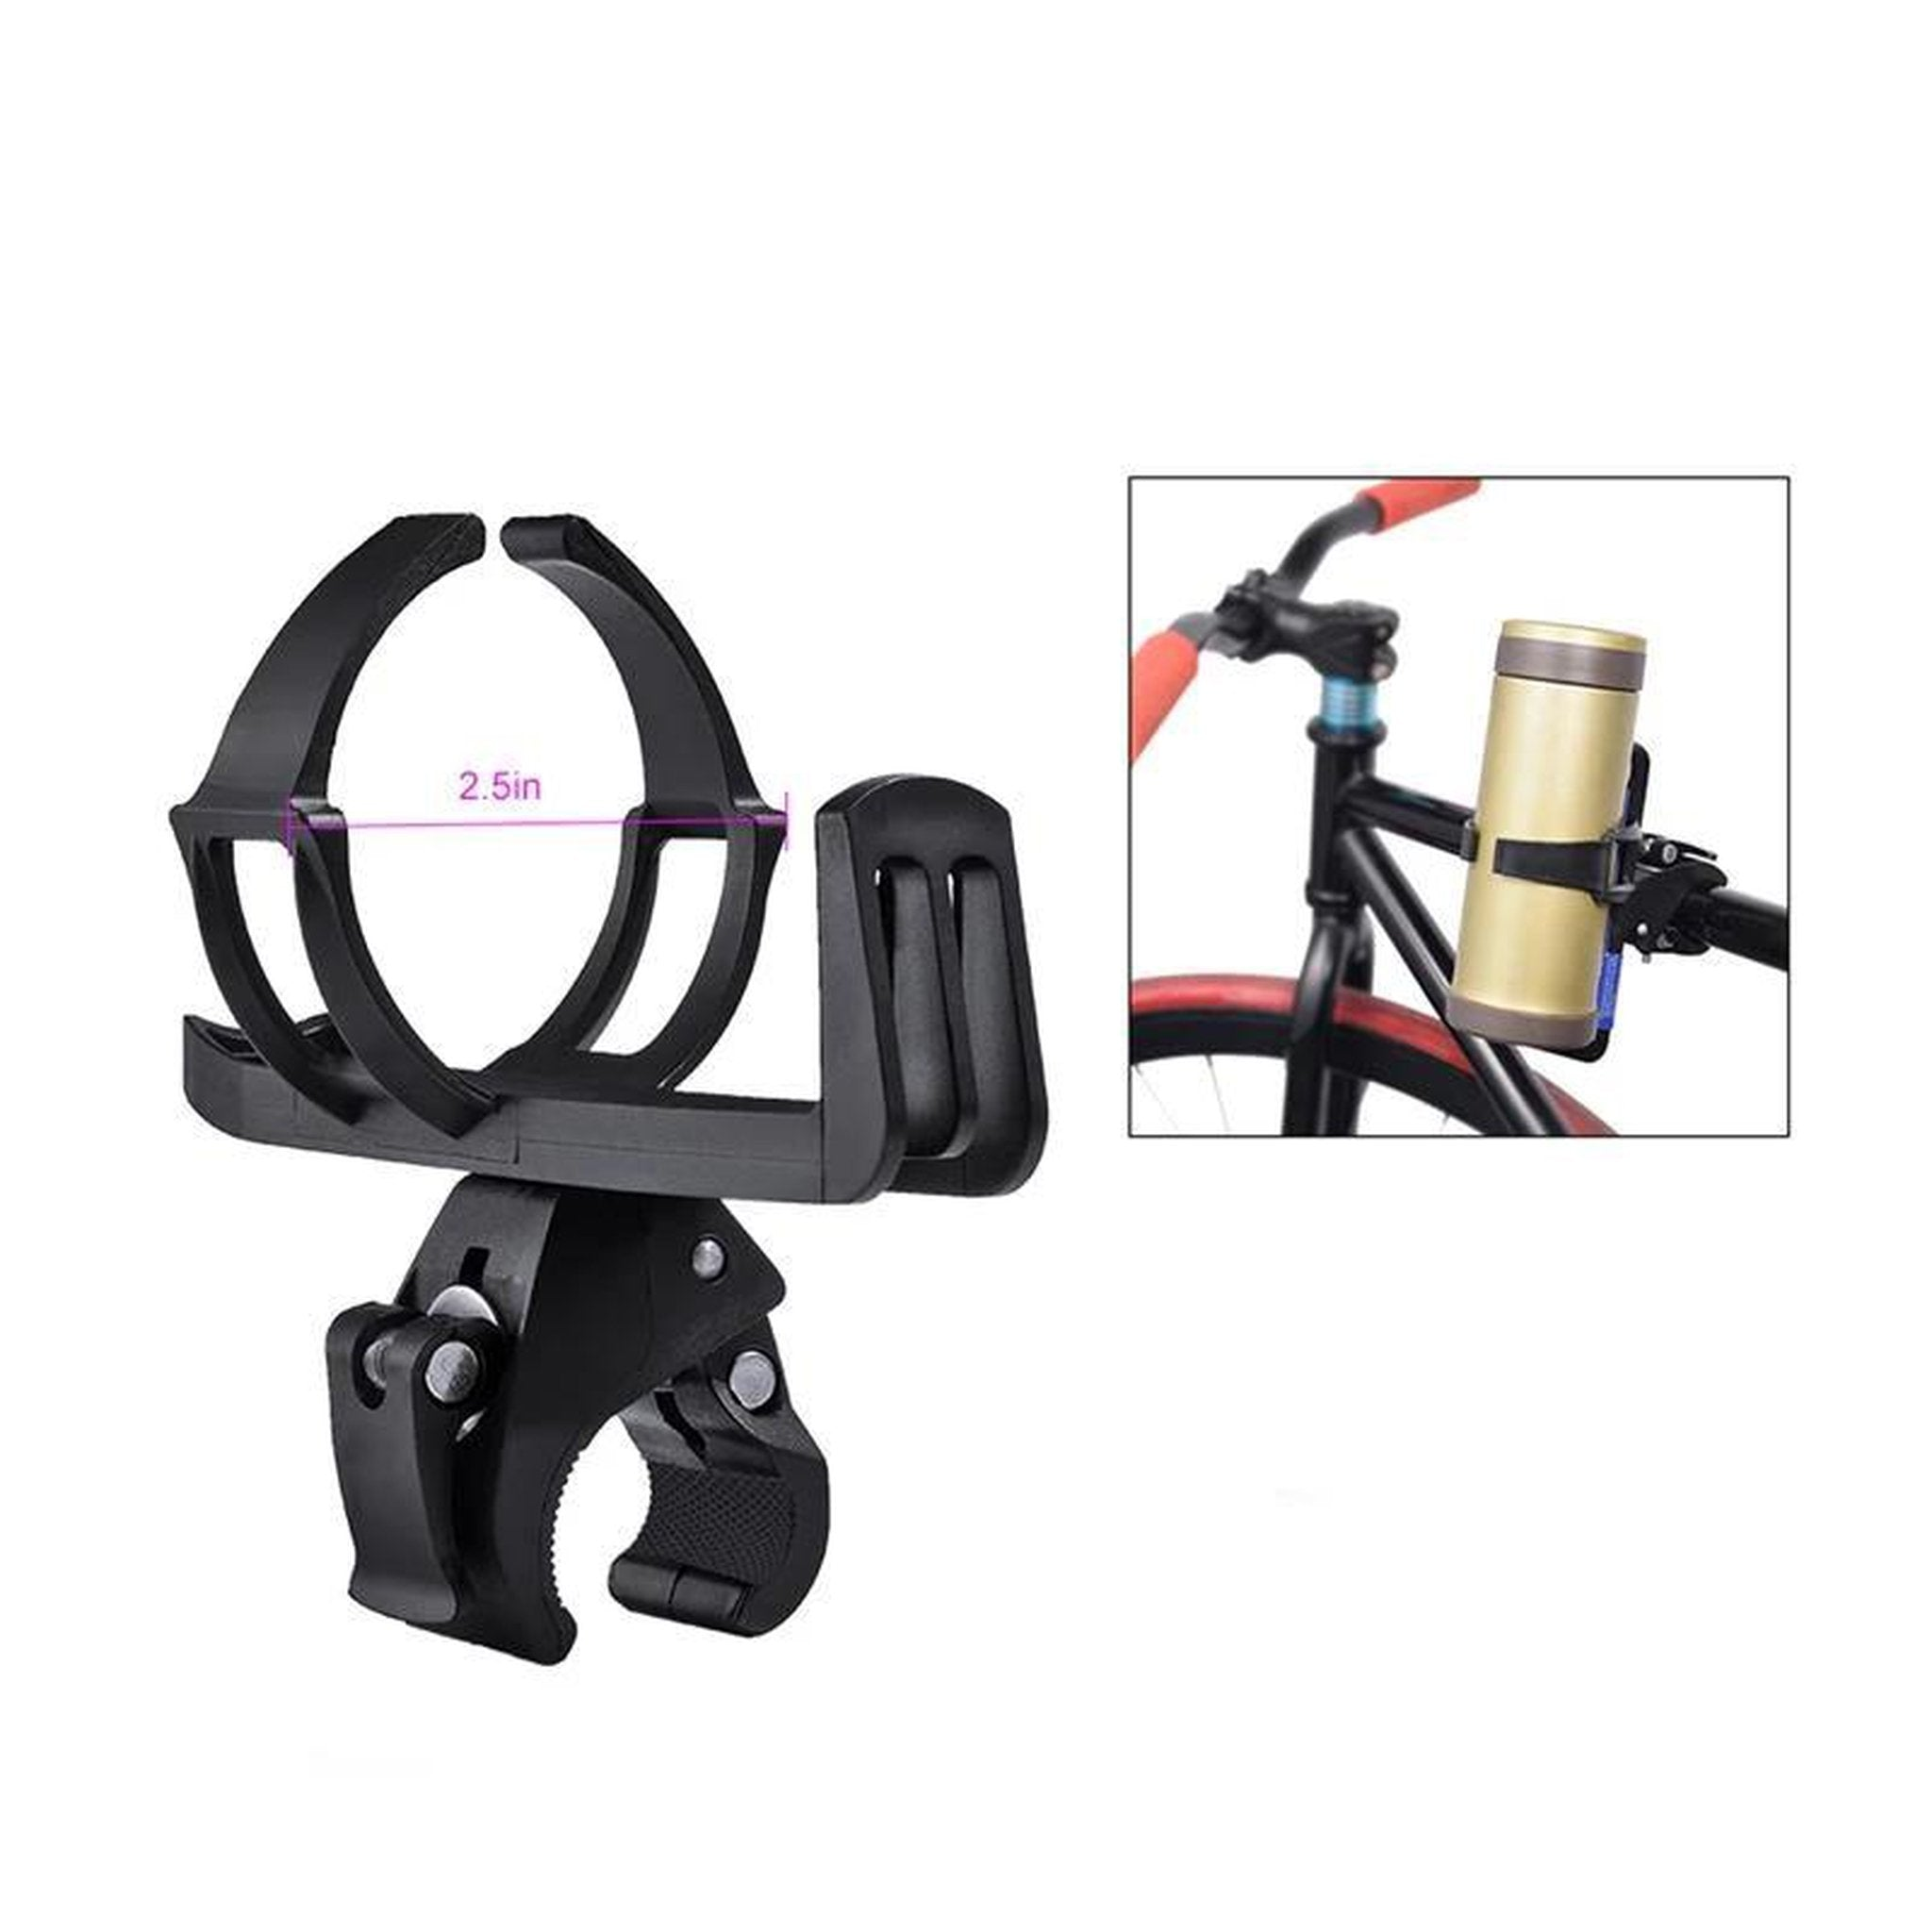 Bicycle Drink Holder for $18.99